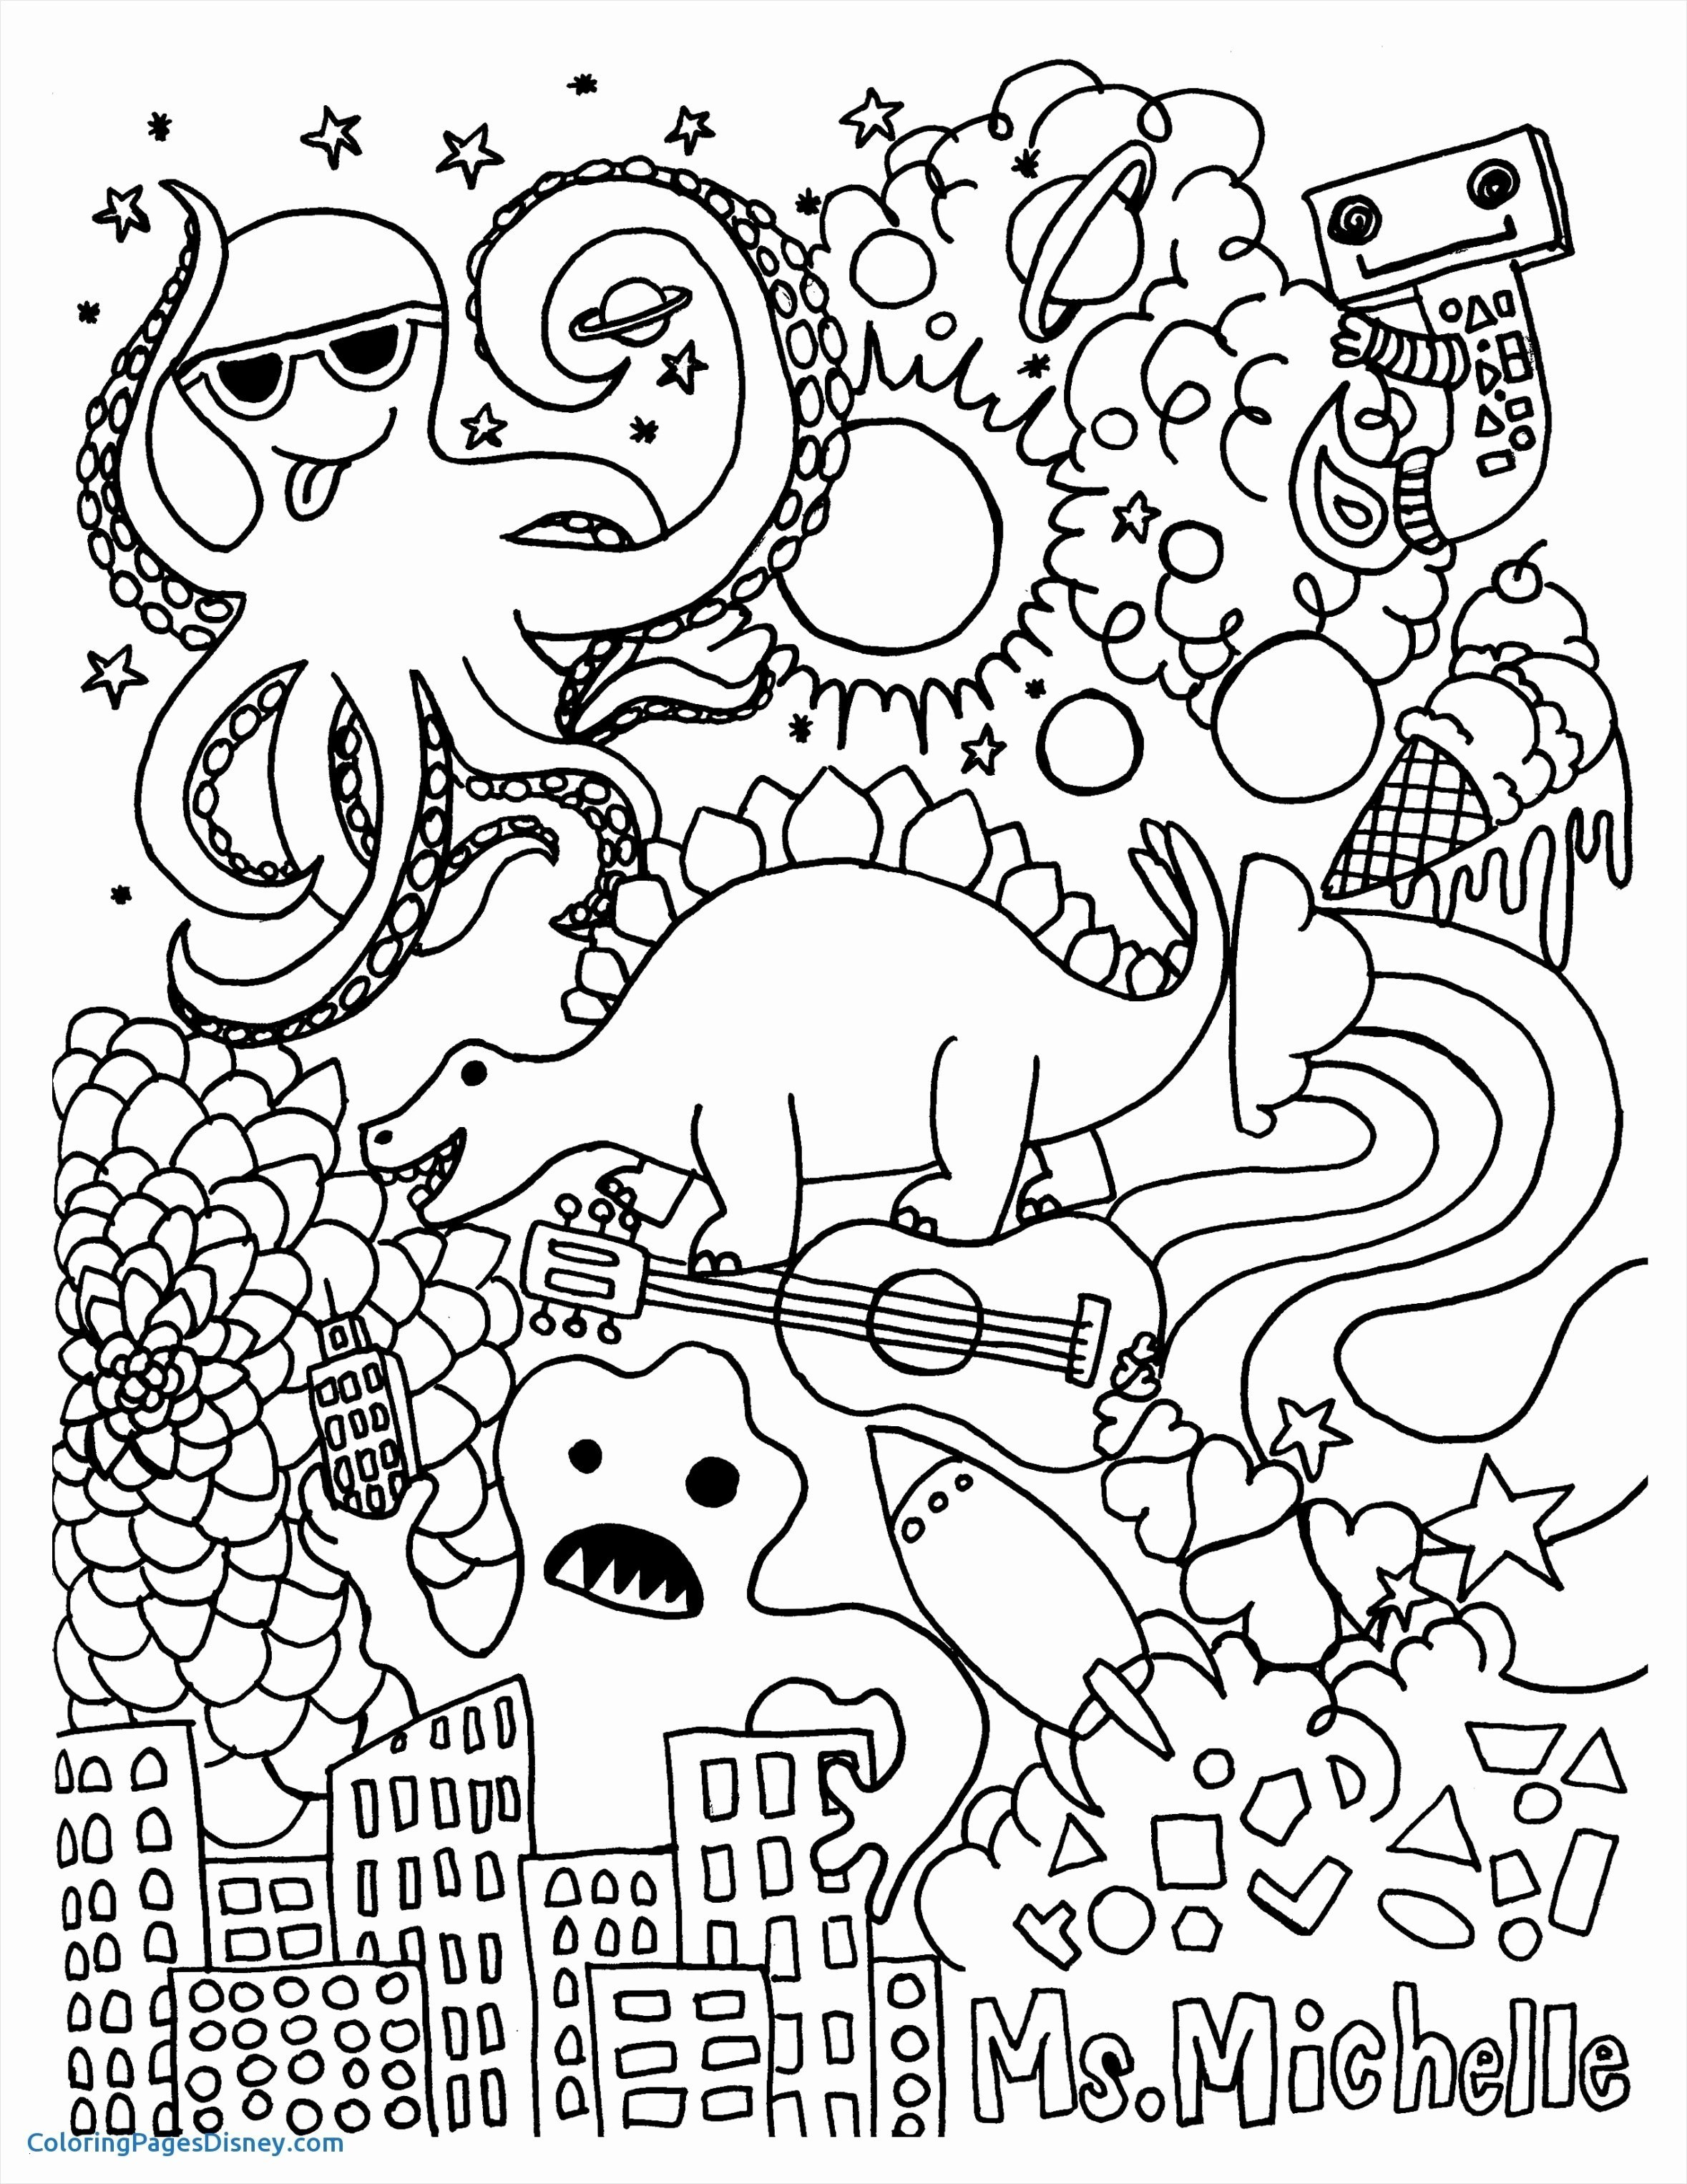 24 Free Coloring Pages Of Frozen Gallery - Coloring Sheets